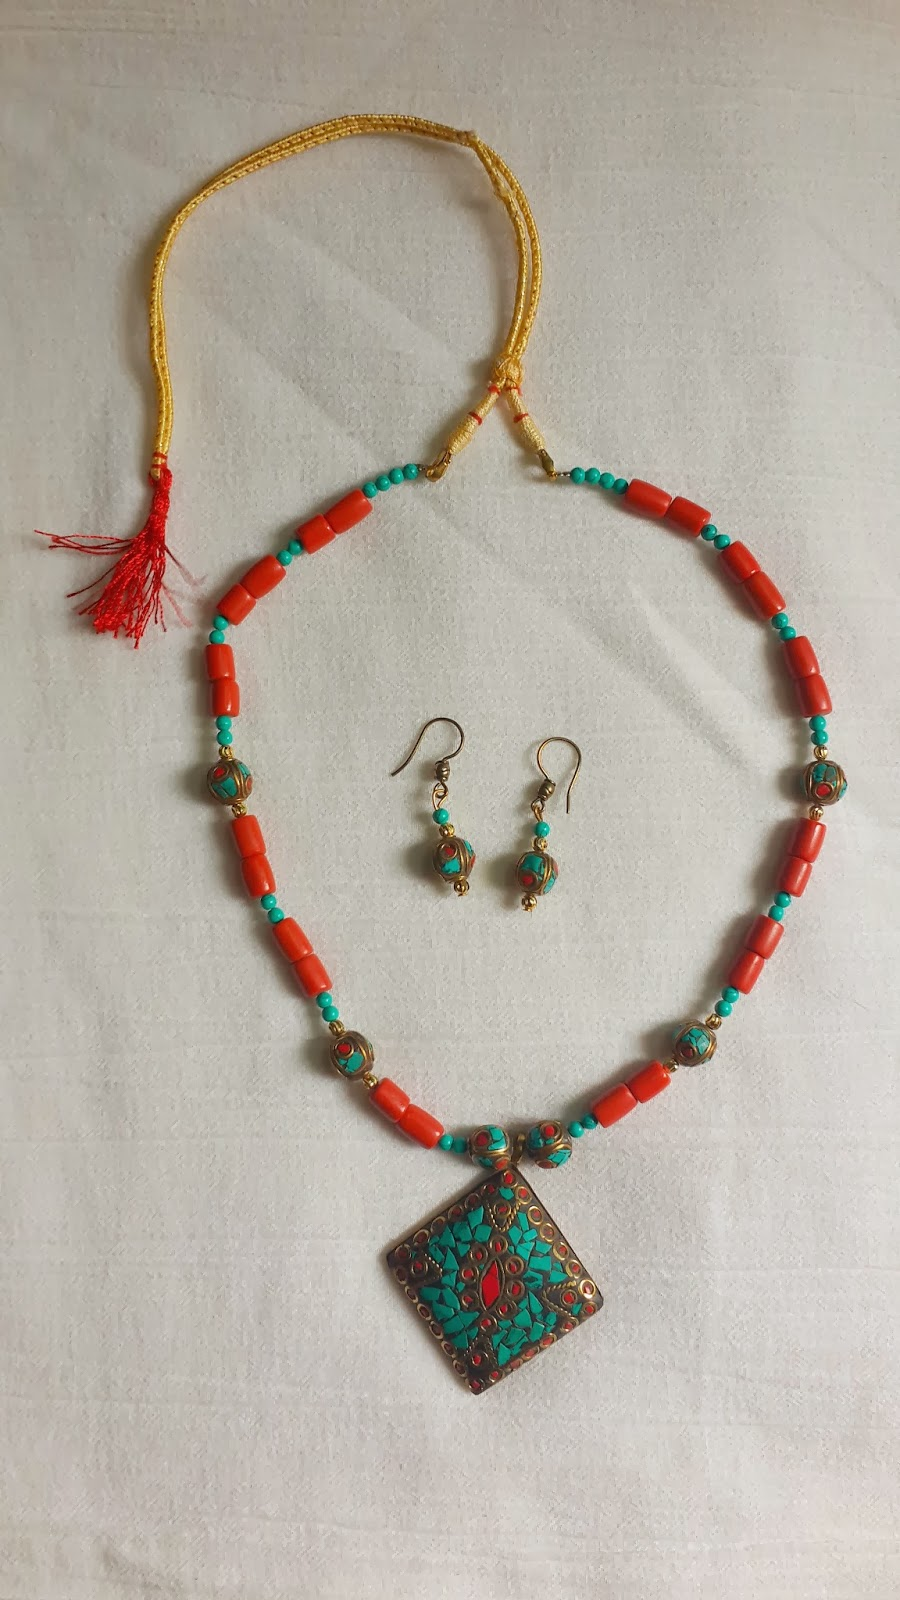 Coral and Tibetan Beads Jewelry